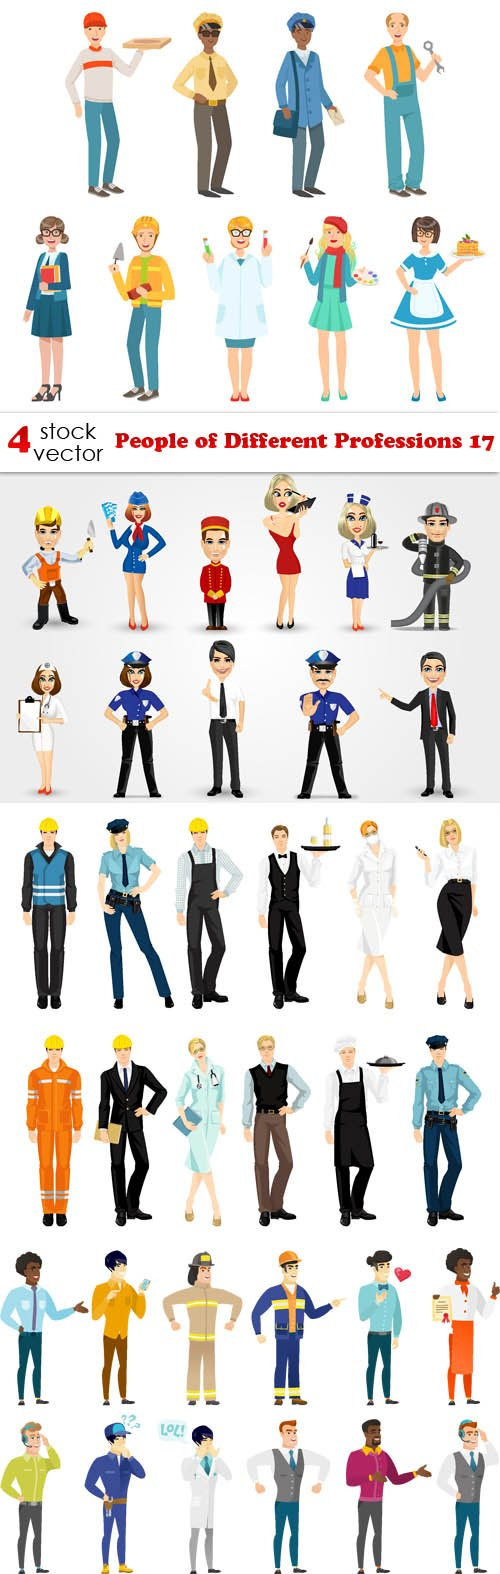 Vectors - People of Different Professions 17